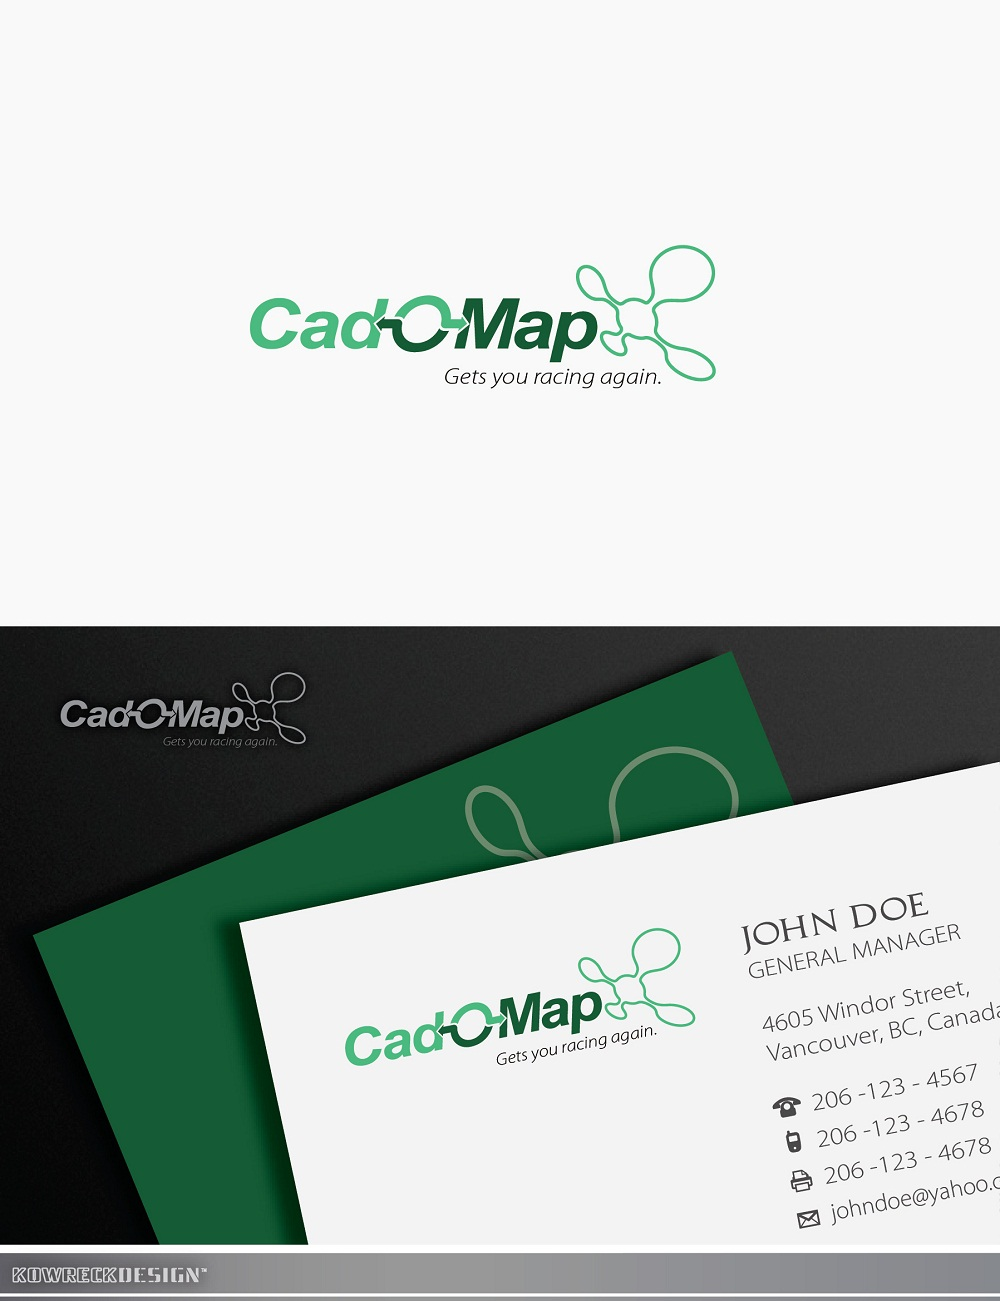 Logo Design by kowreck - Entry No. 165 in the Logo Design Contest Captivating Logo Design for CadOMap software product.